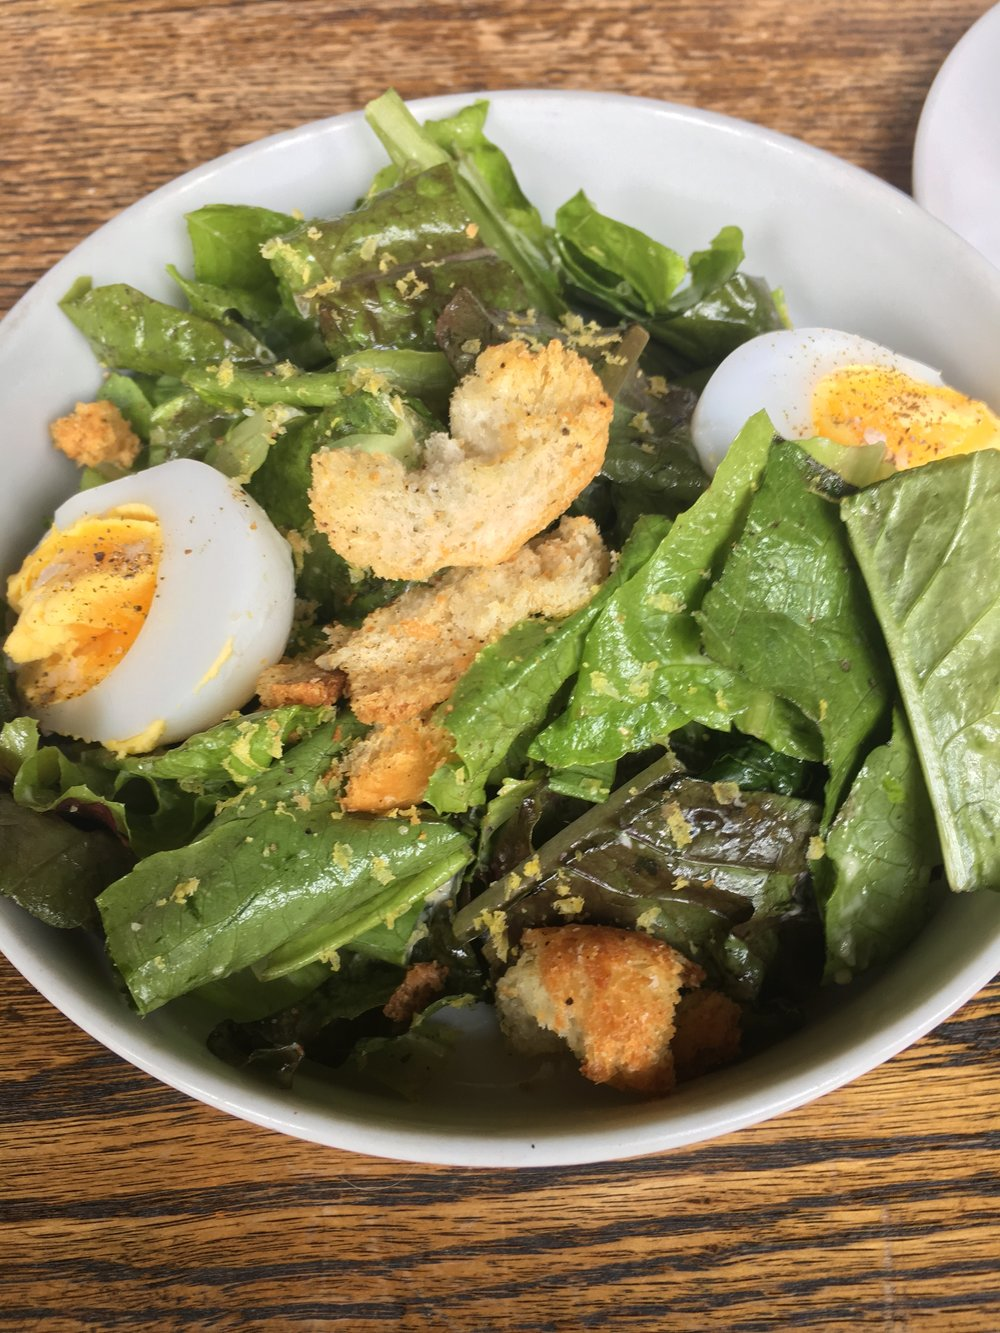 Caesar Salad - With duck eggAlso on the menu in May 2017, and I wish it had stuck around. A good one.